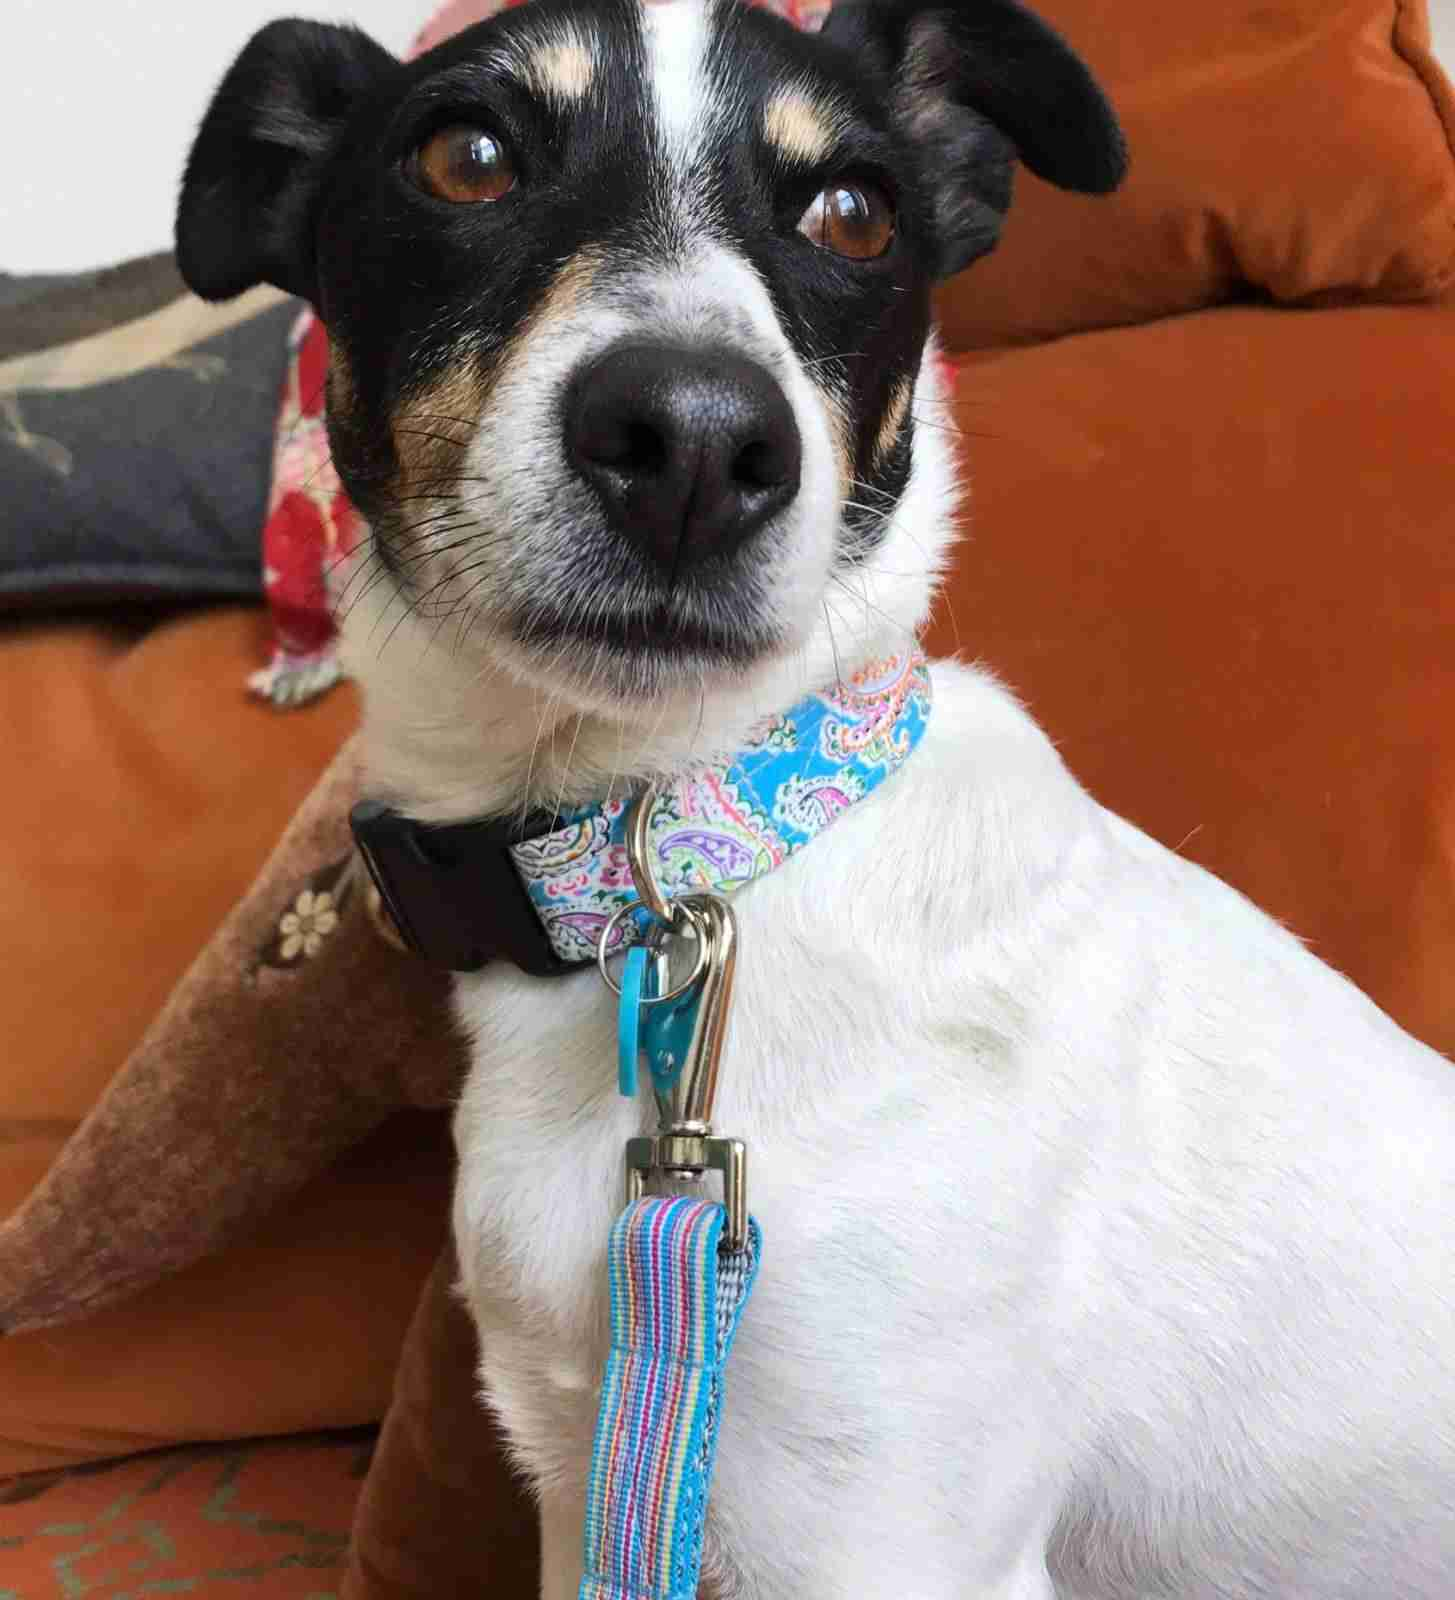 Scrufts Gypsy Dog Collar and Lead in Turquoise